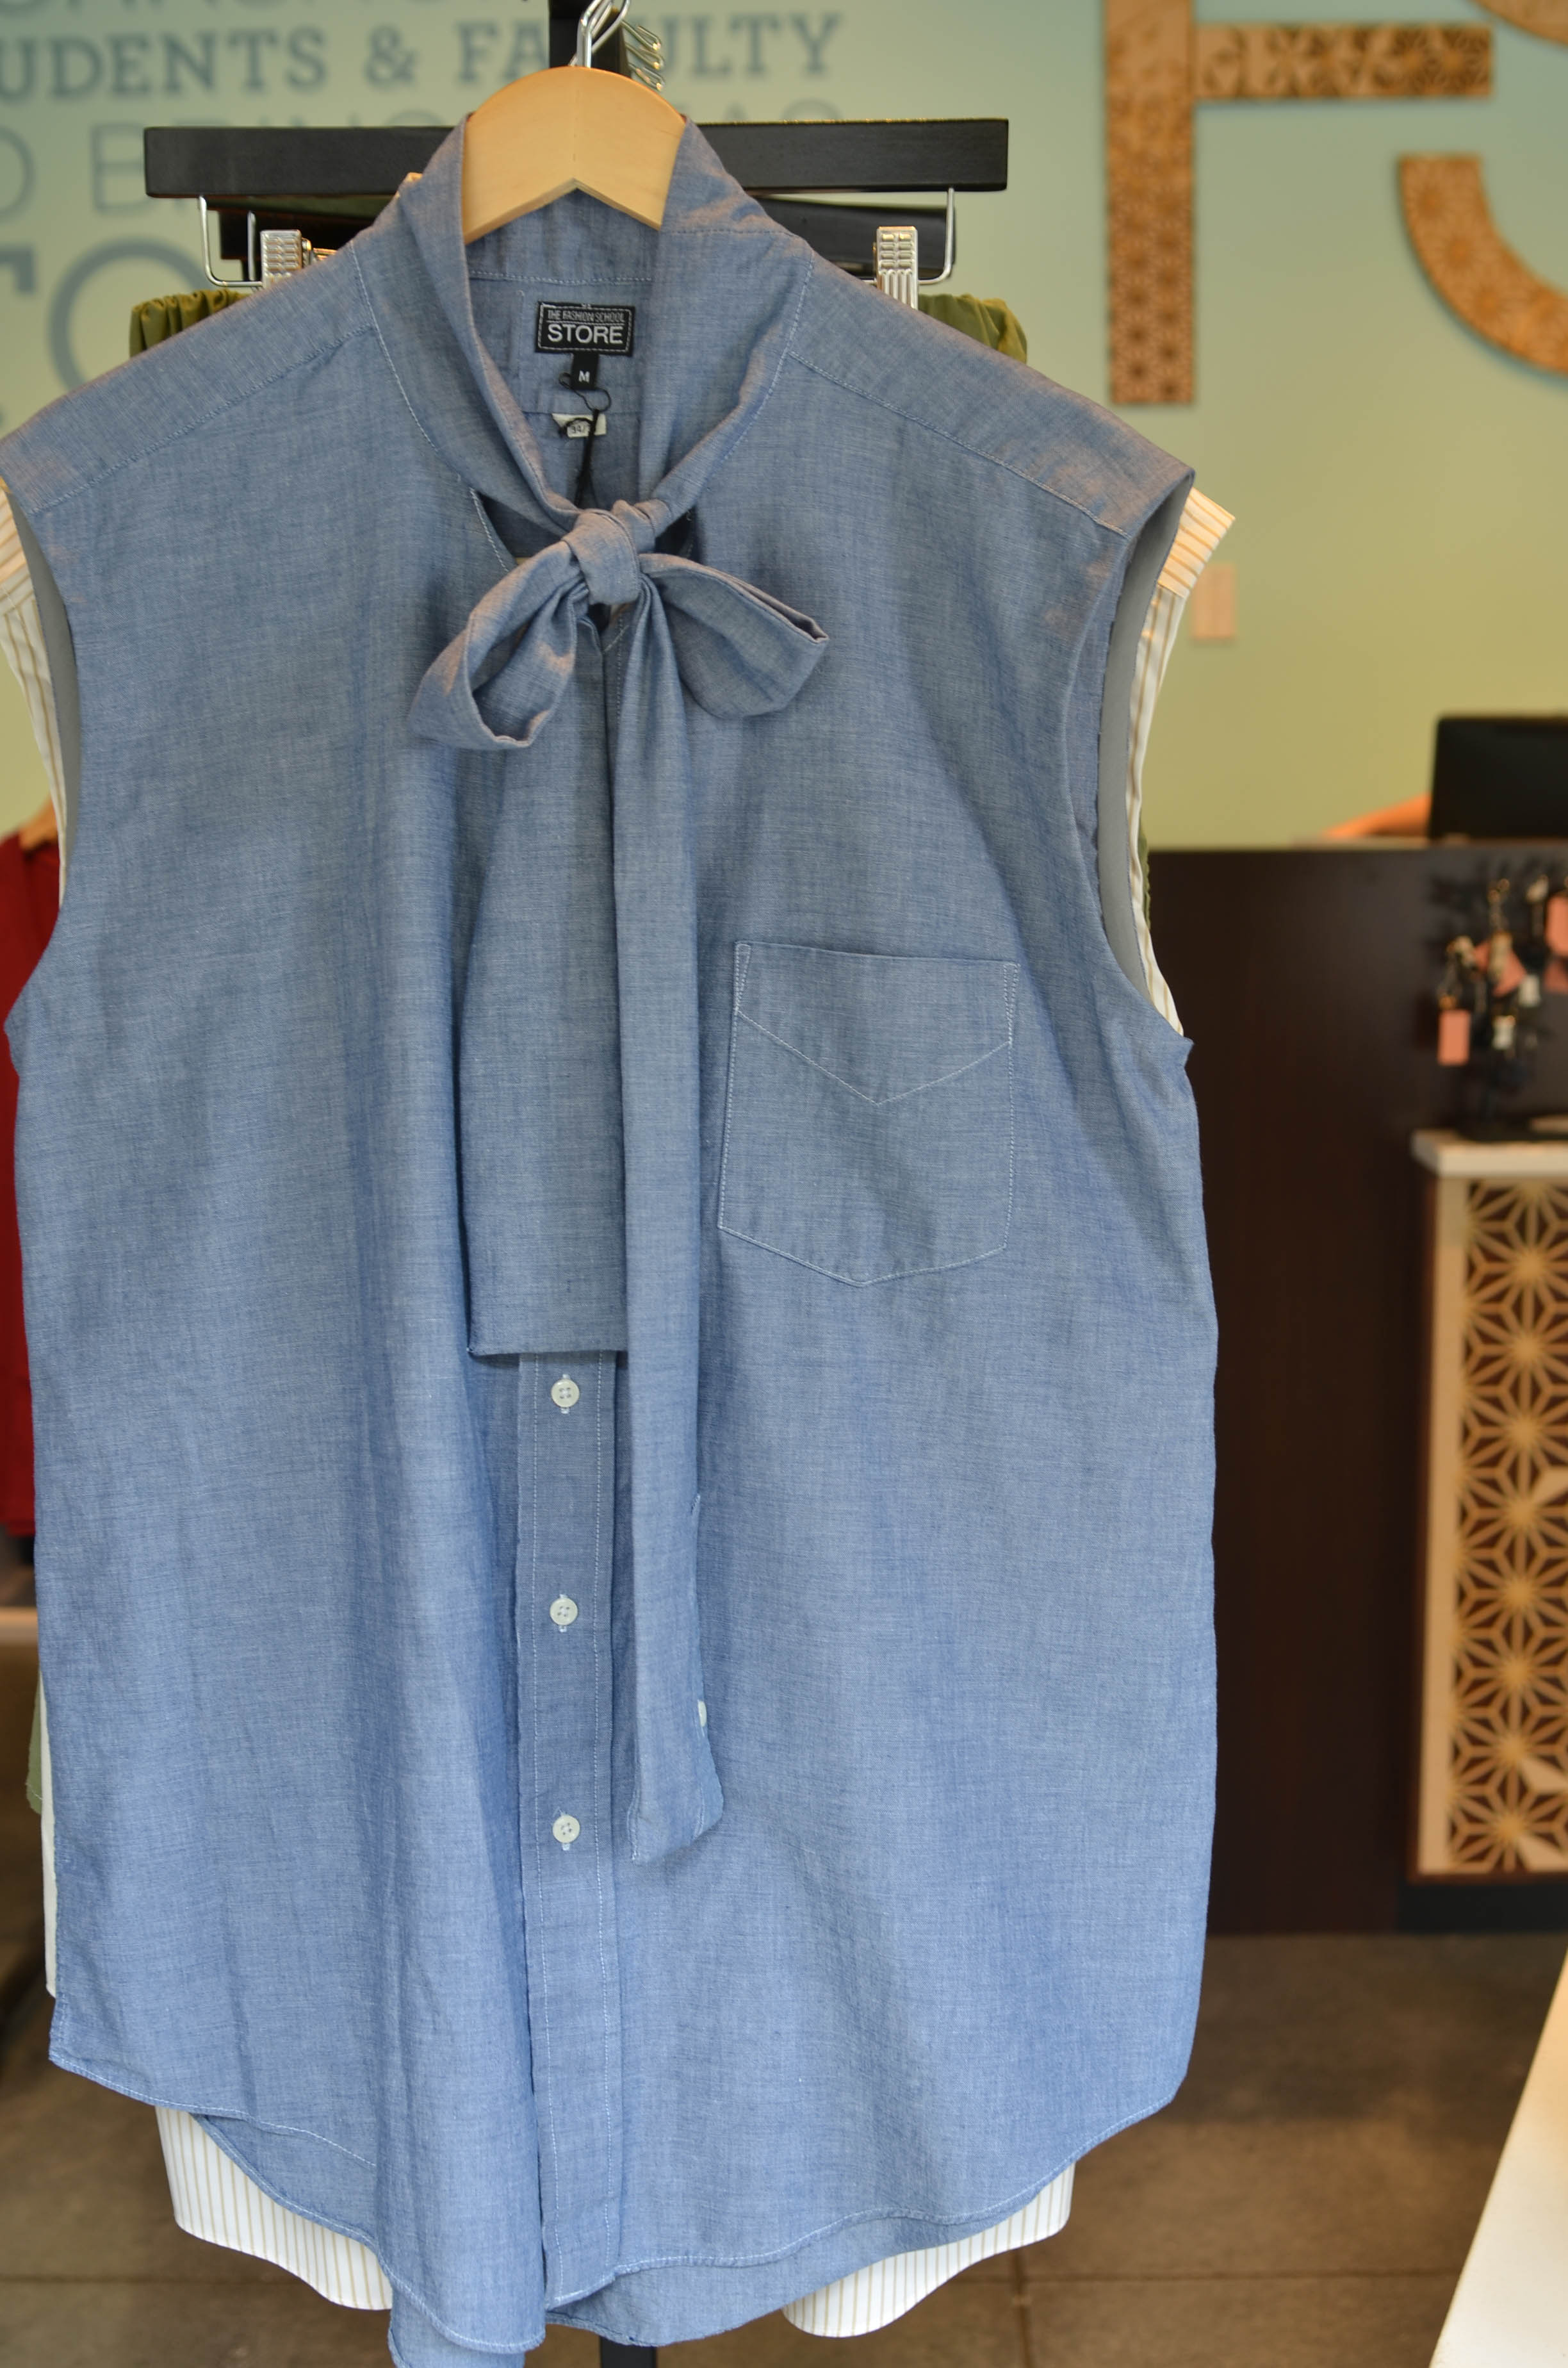 Upcycled garment created by students Greta Busche and Evelyn Rossol